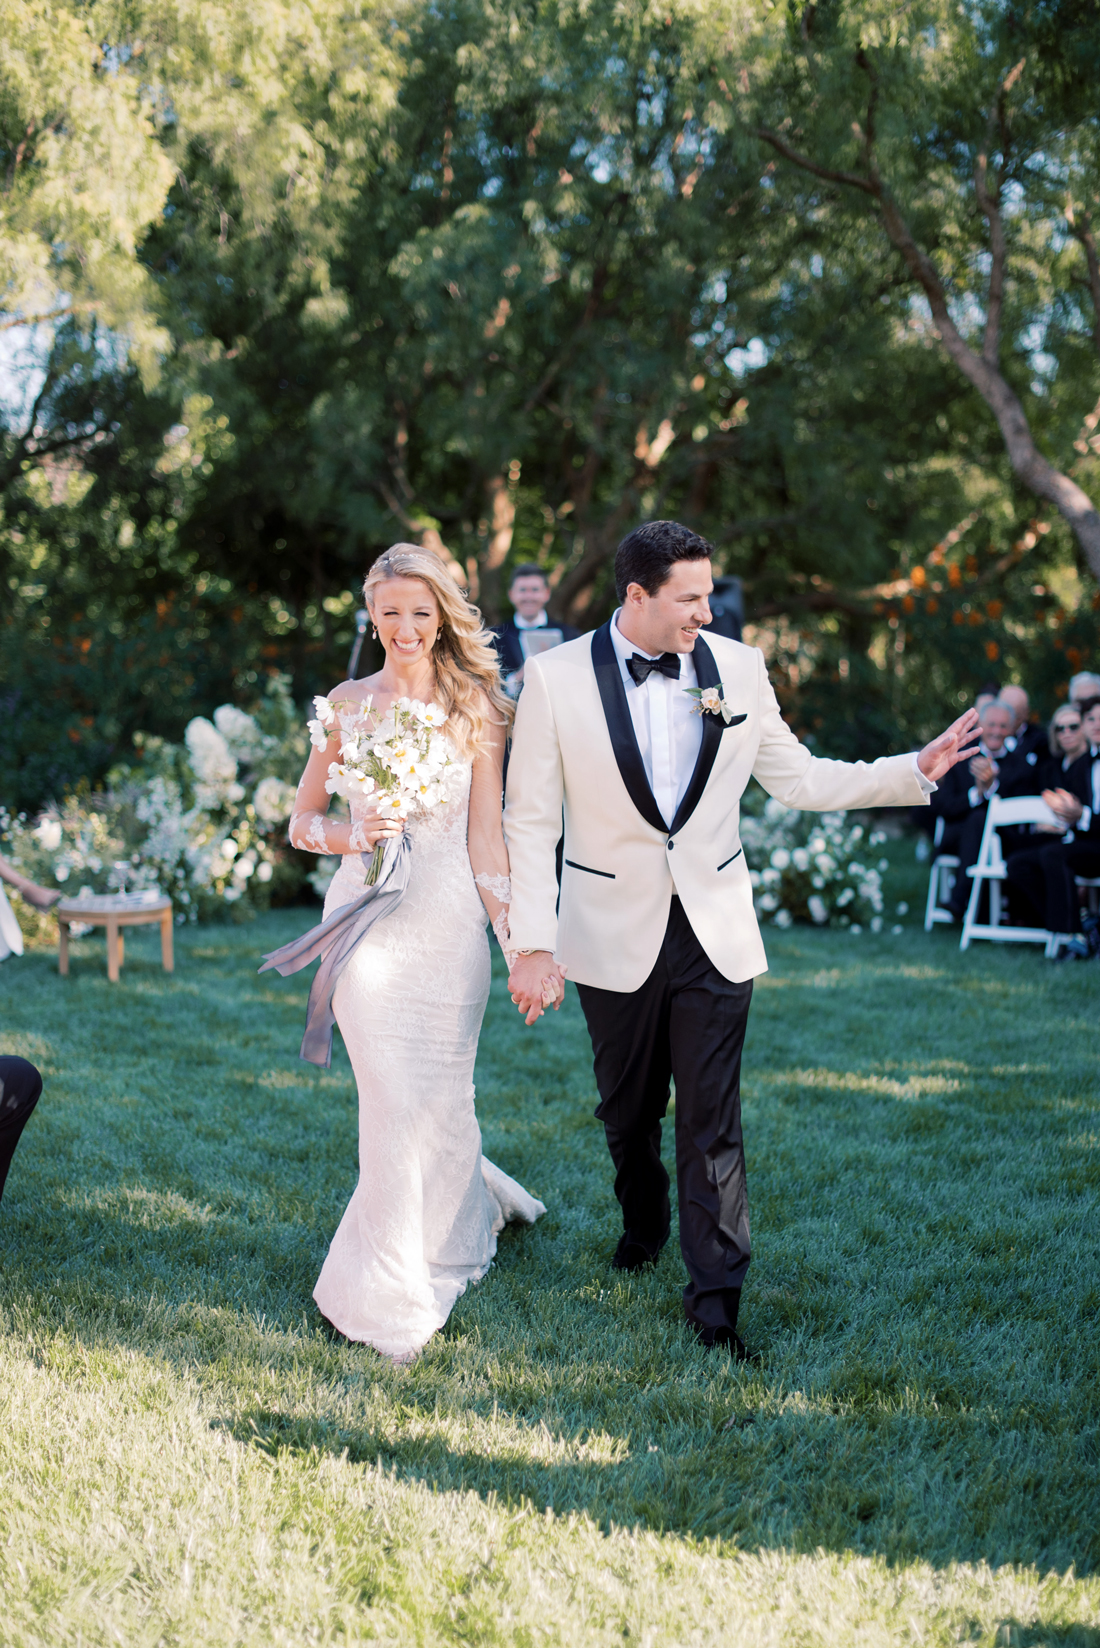 bride and groom recessional walk after ceremony